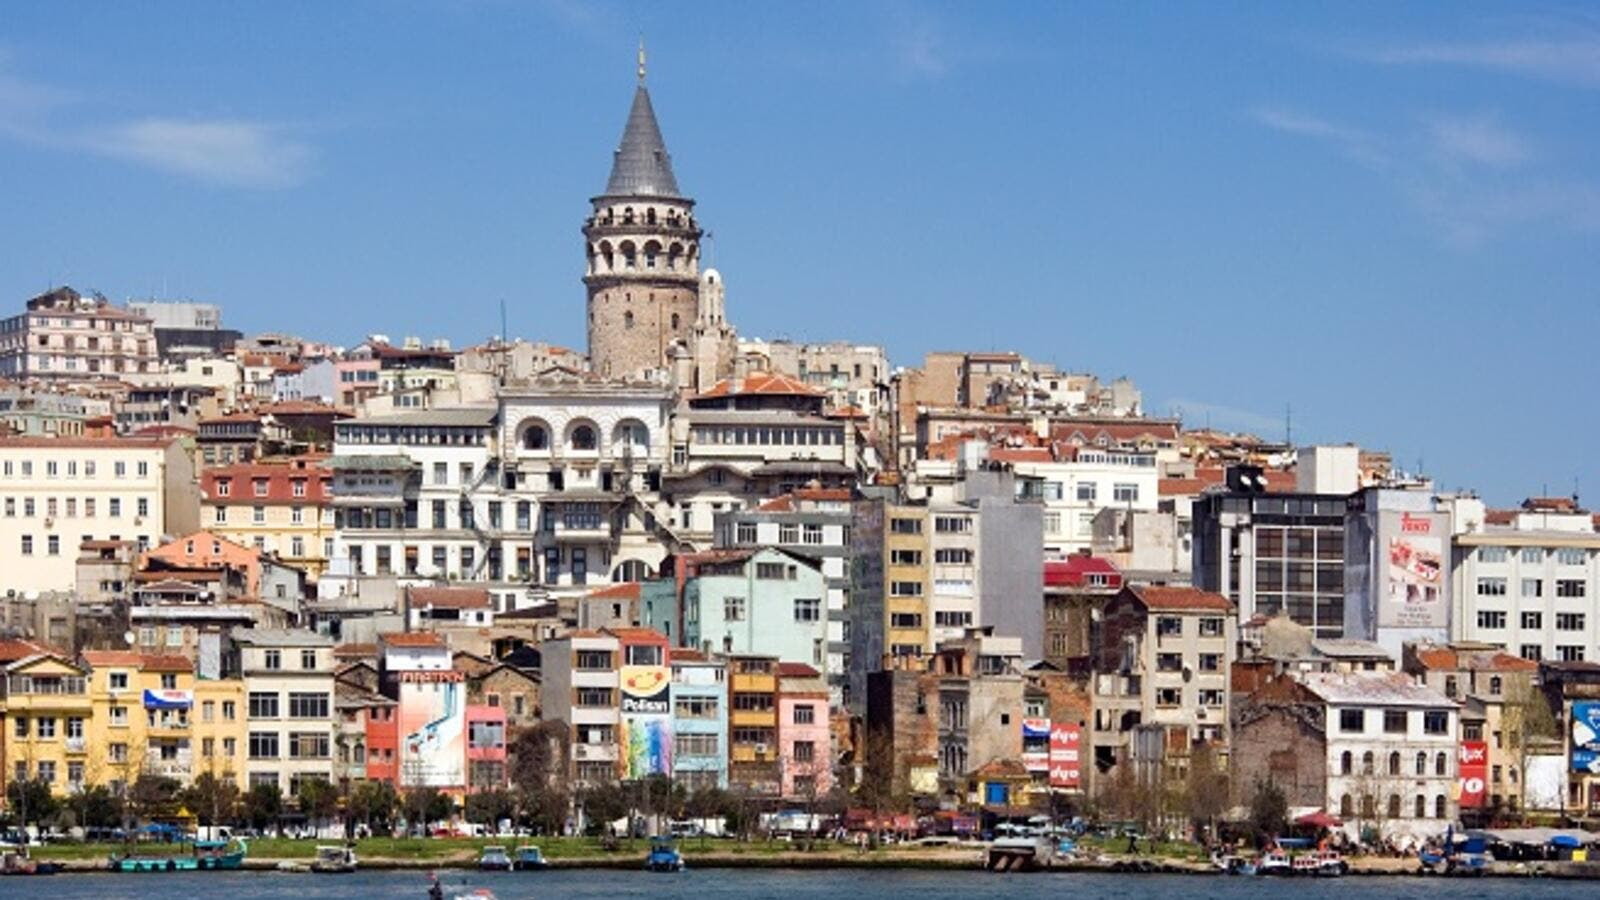 Foreigners bought 5,367 properties in Turkey during the first quarter of 2018, compared to 4,316 last year. (Shutterstock)